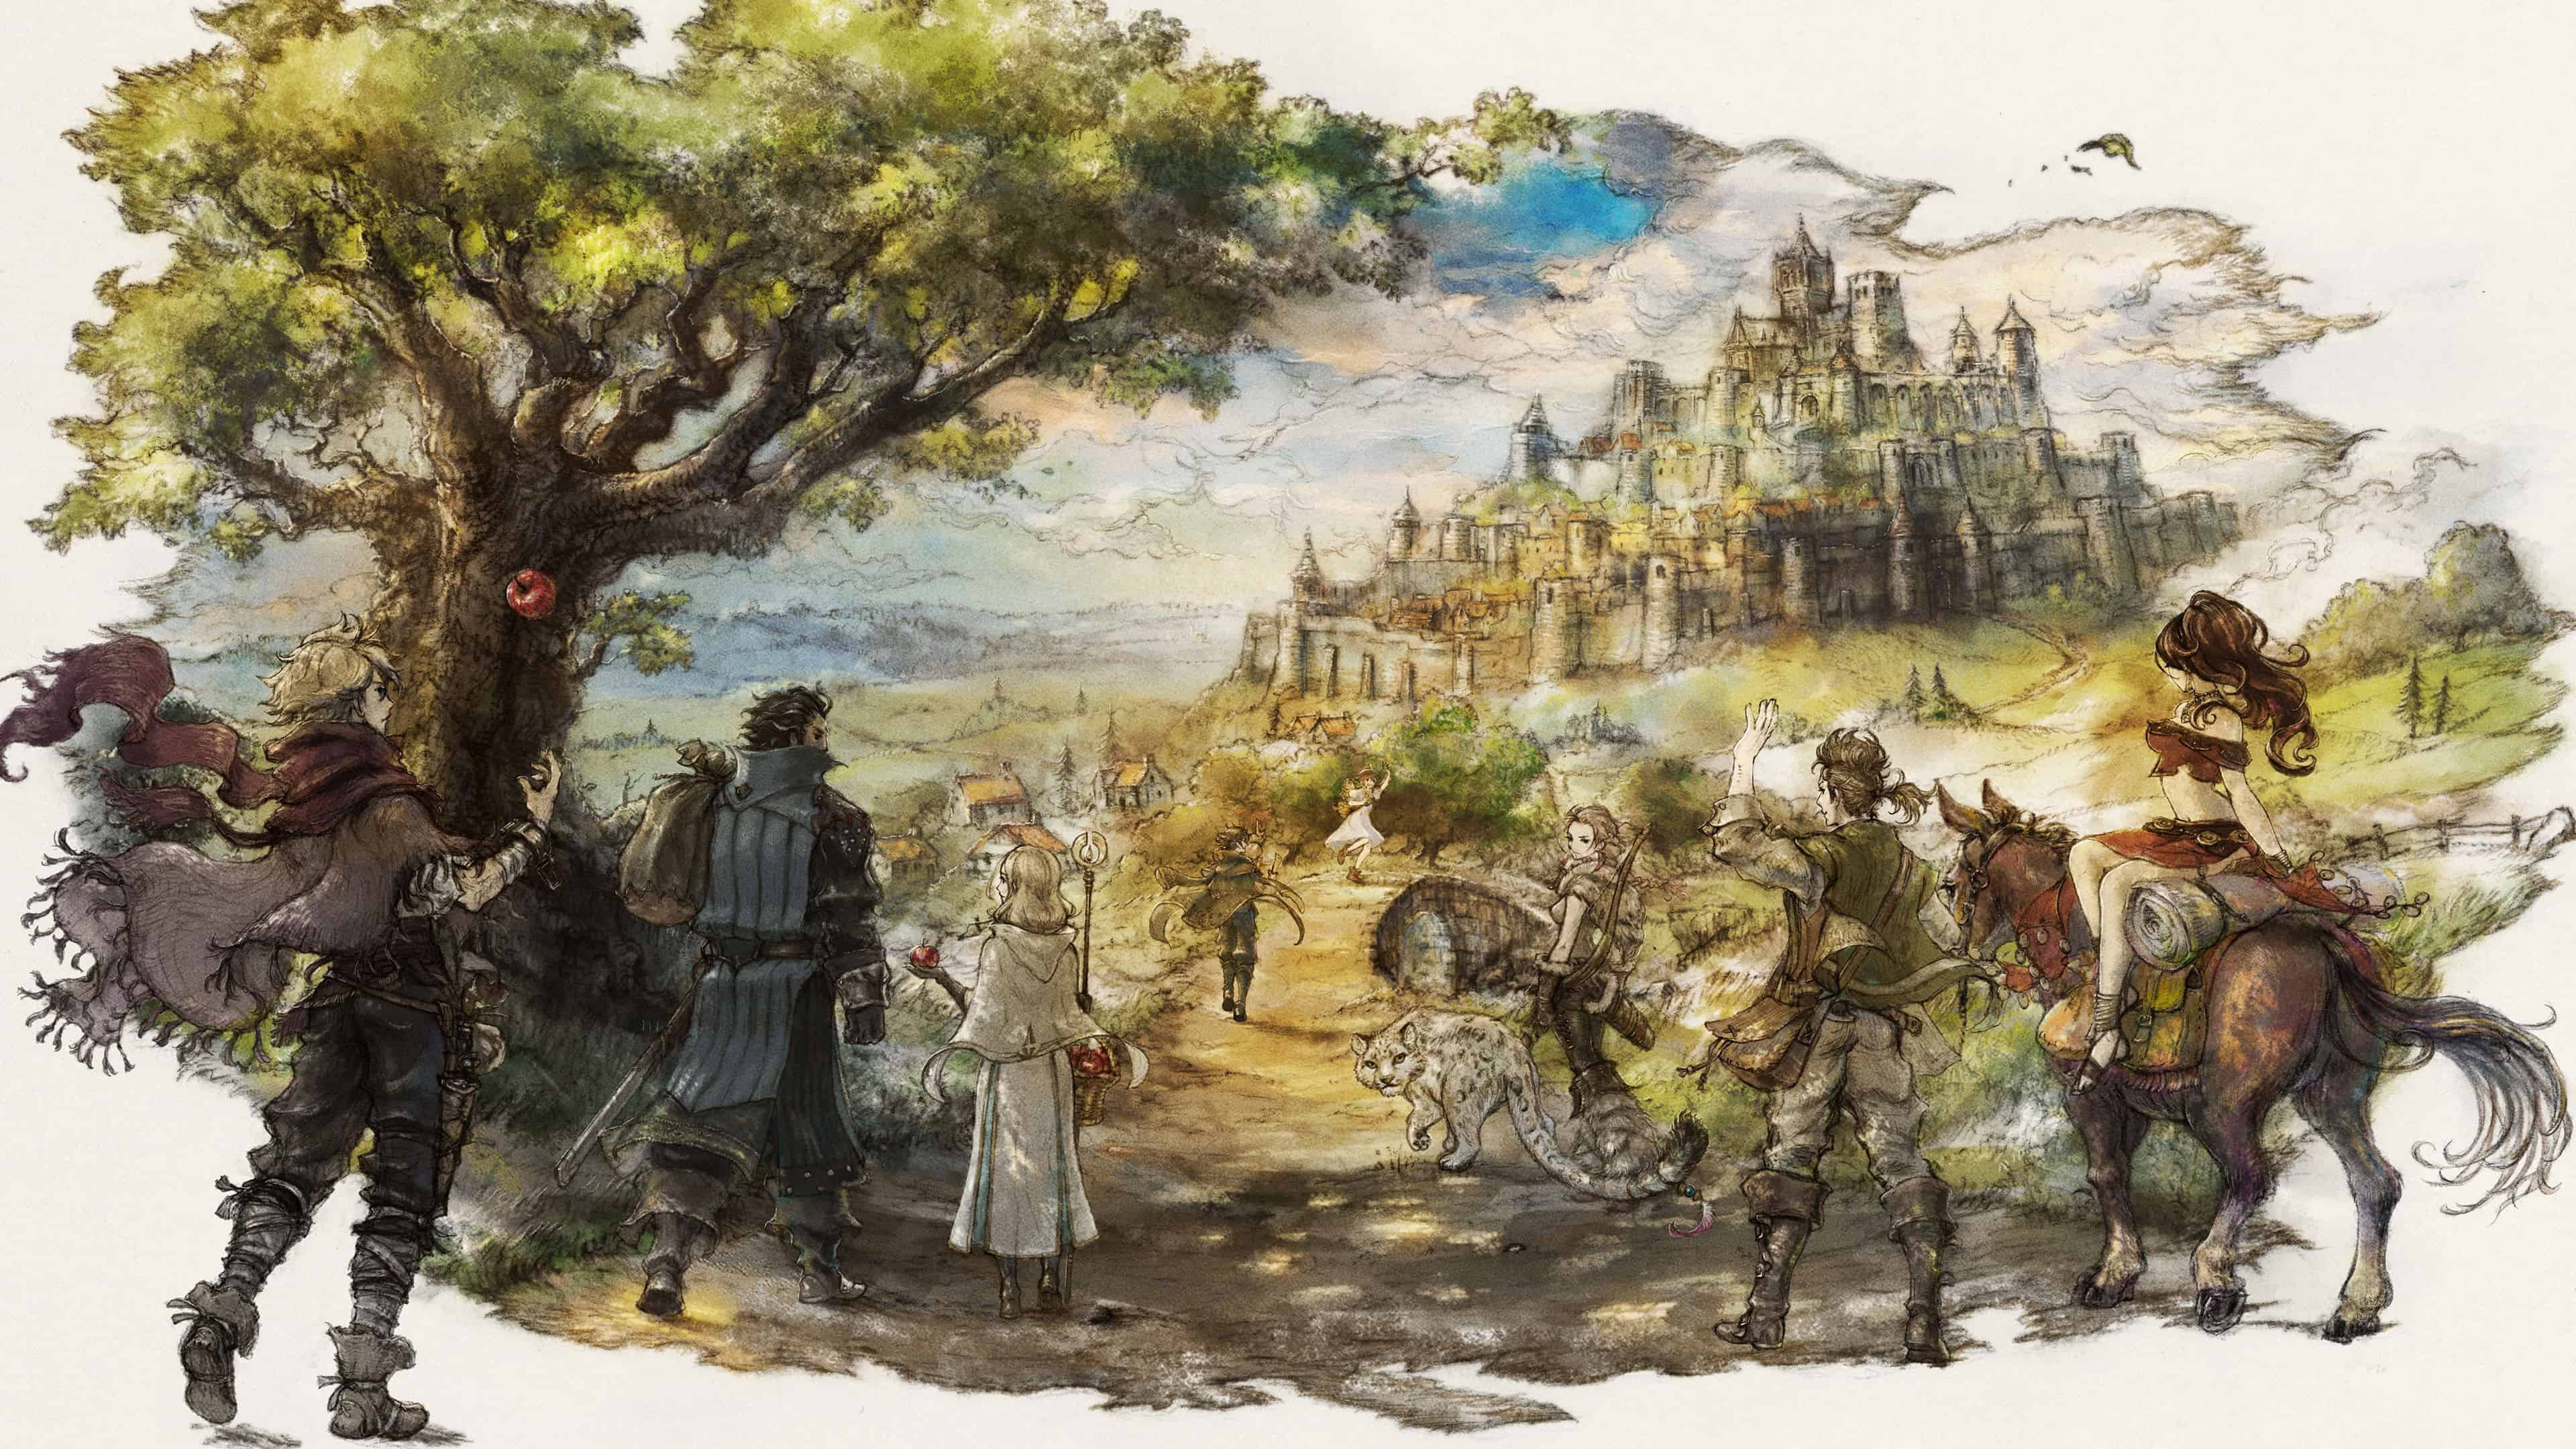 Ultra Hd Wallpapers Cars Octopath Traveler Uhd 4k Wallpaper Pixelz